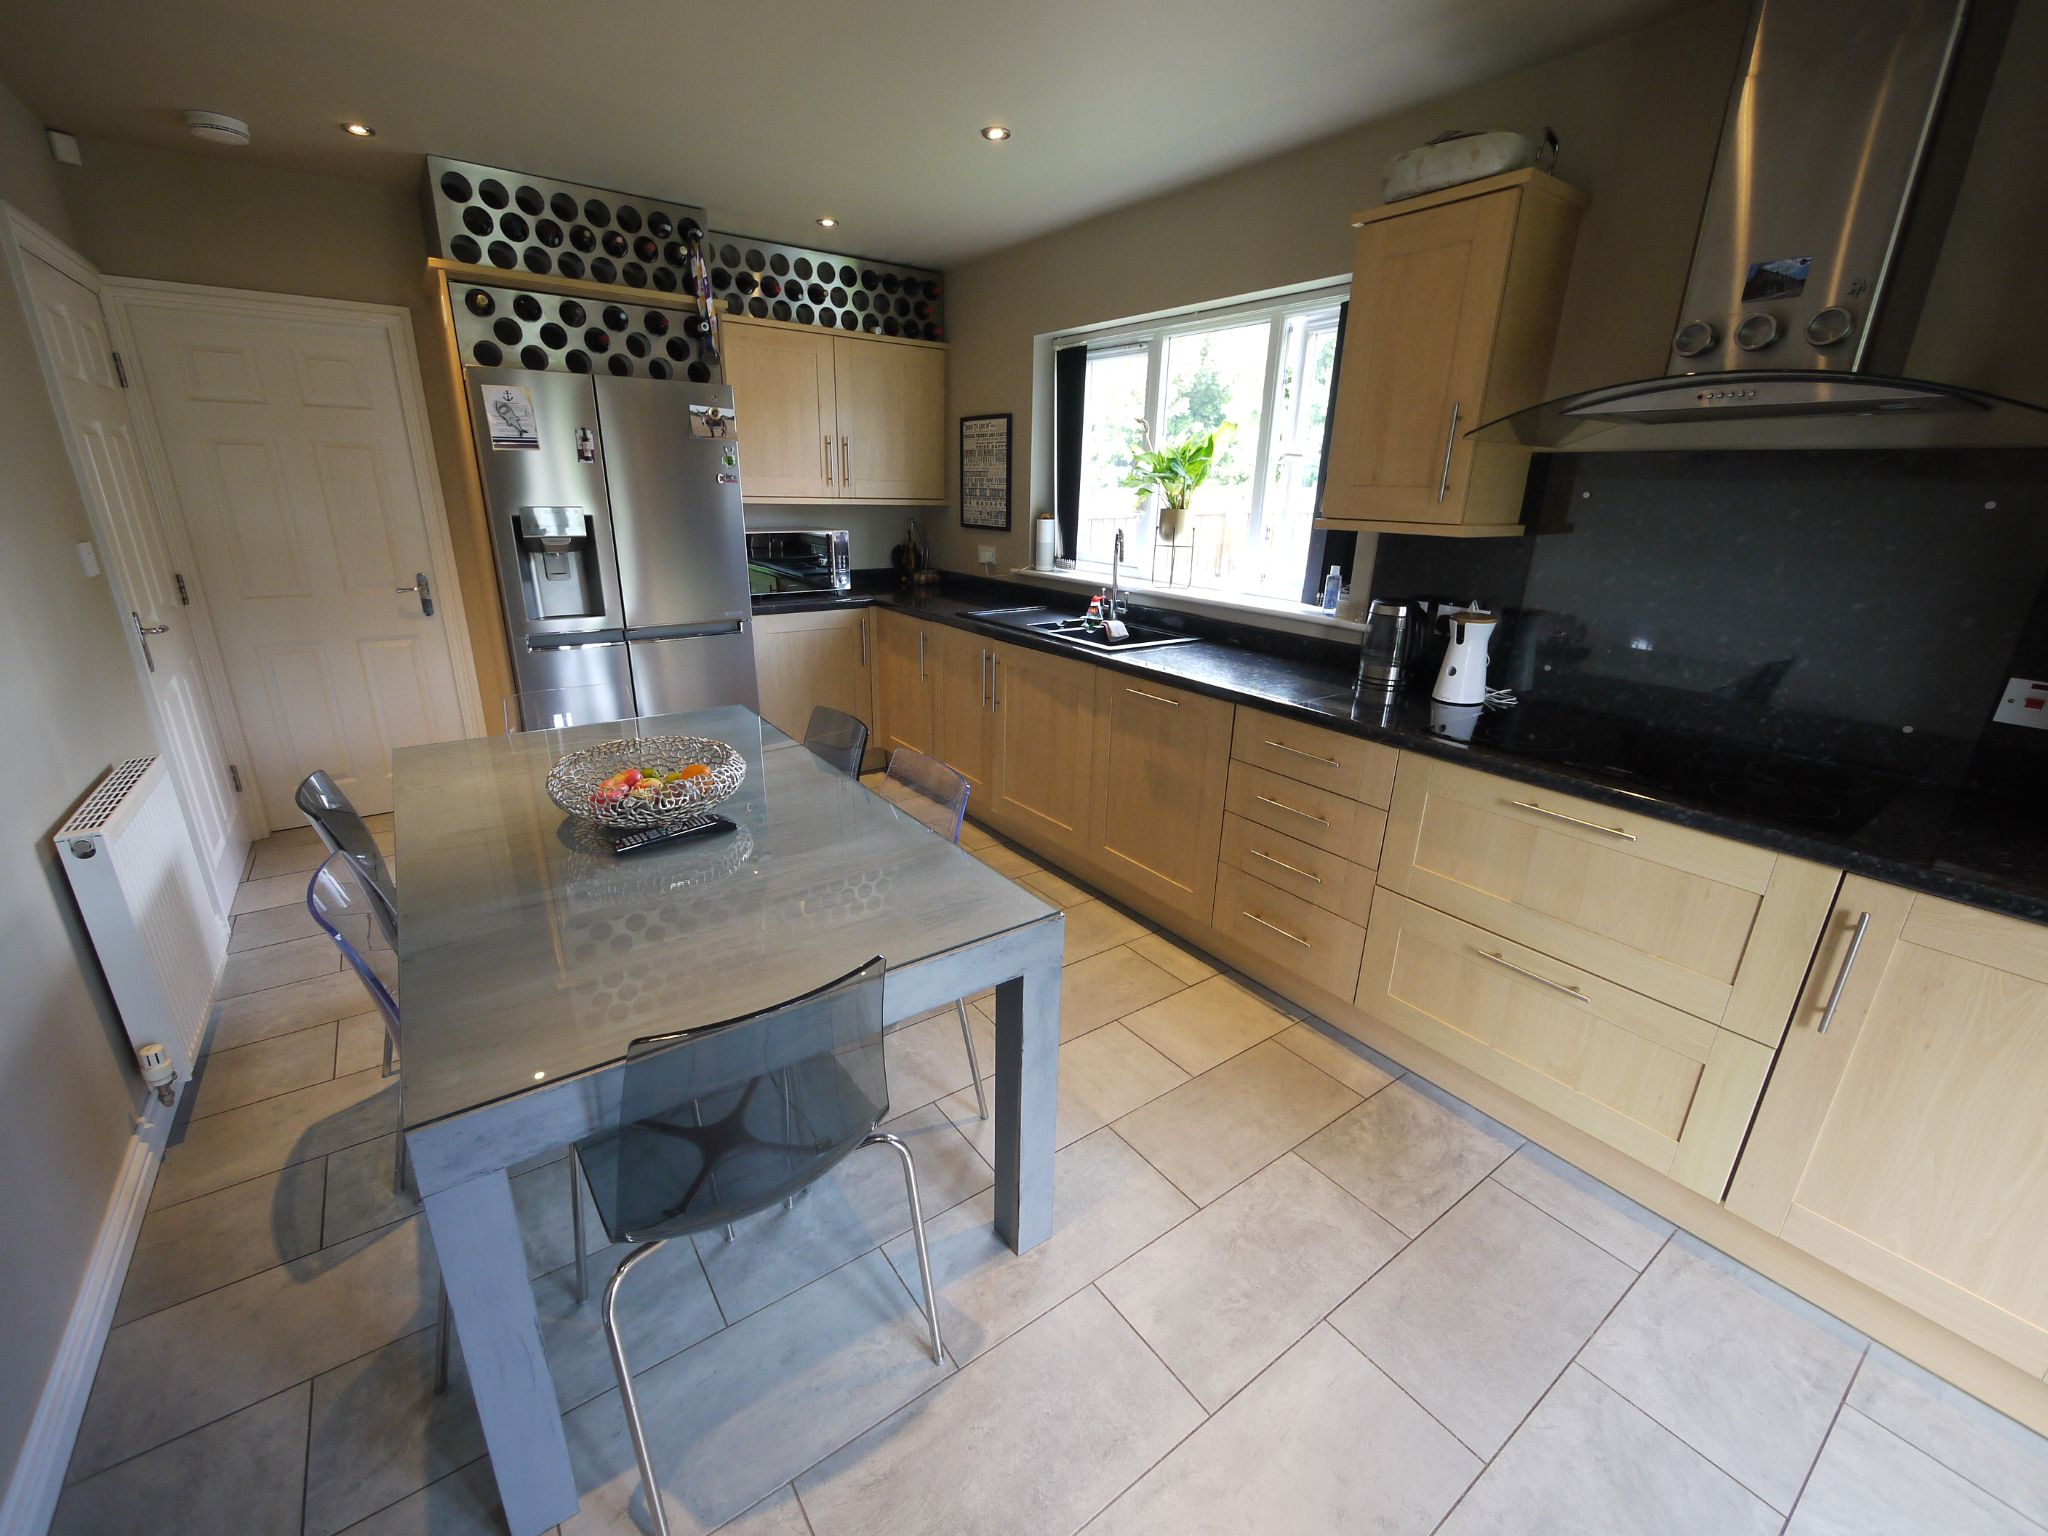 4 bedroom detached house SSTC in Halifax - Kitchen 2.